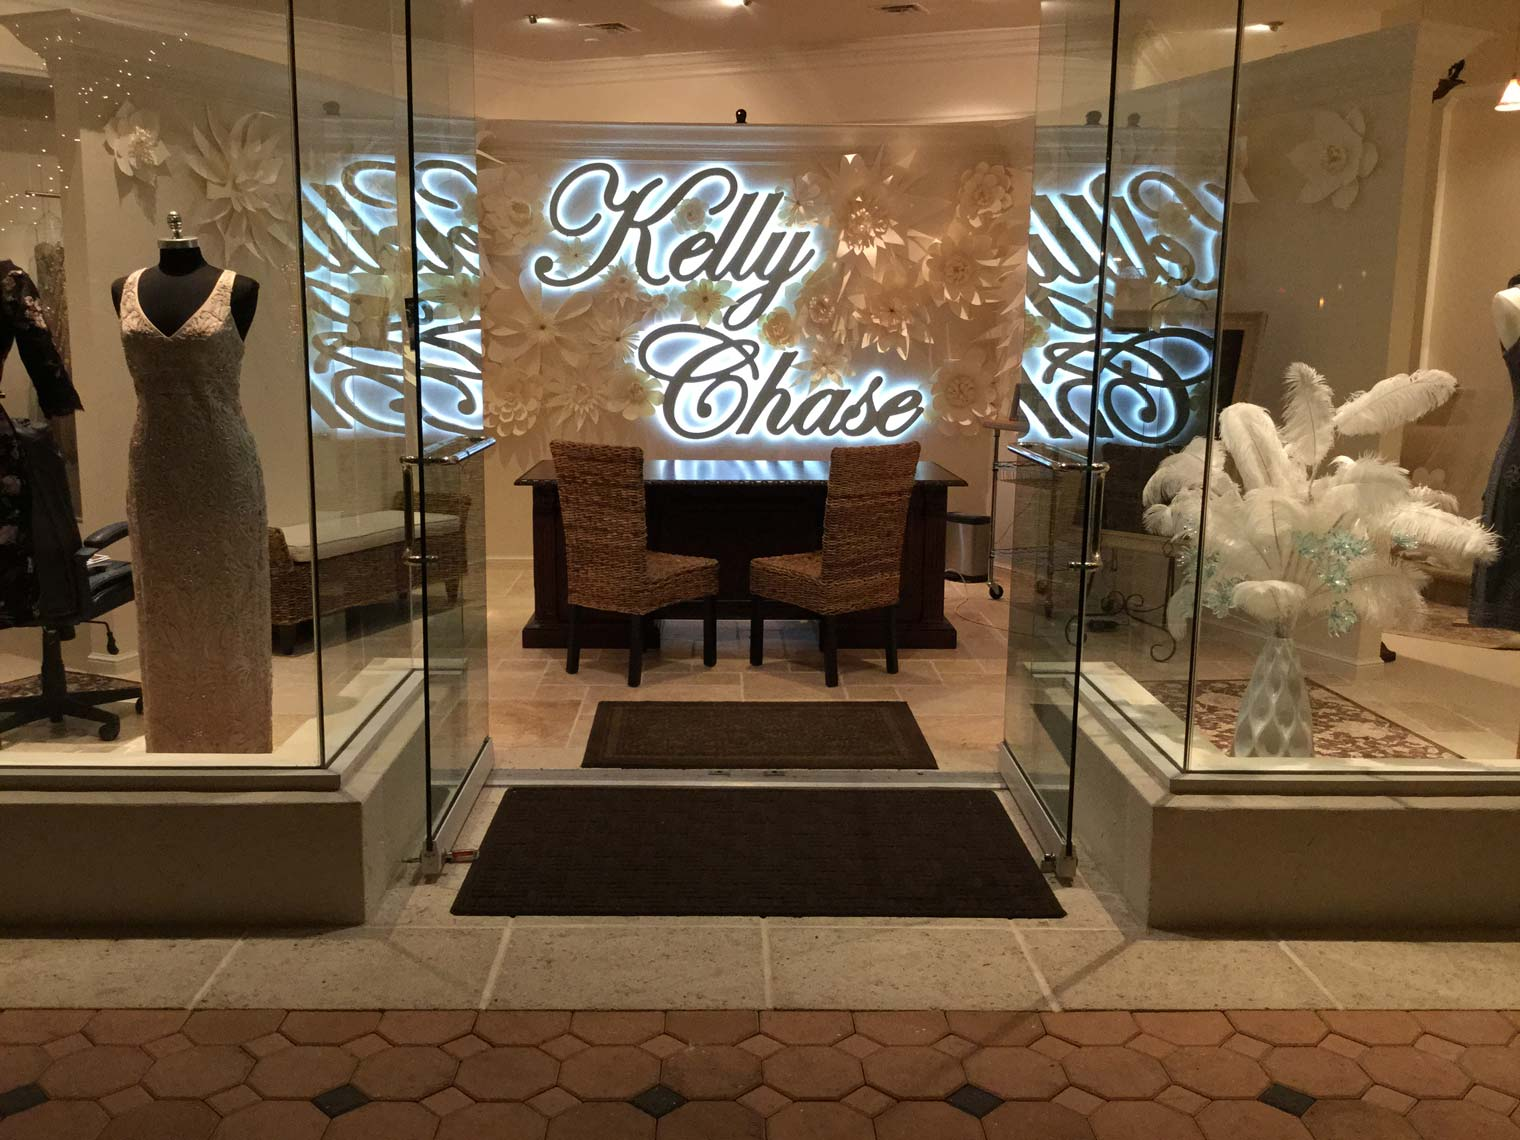 Kelly-Chase-Couture-016